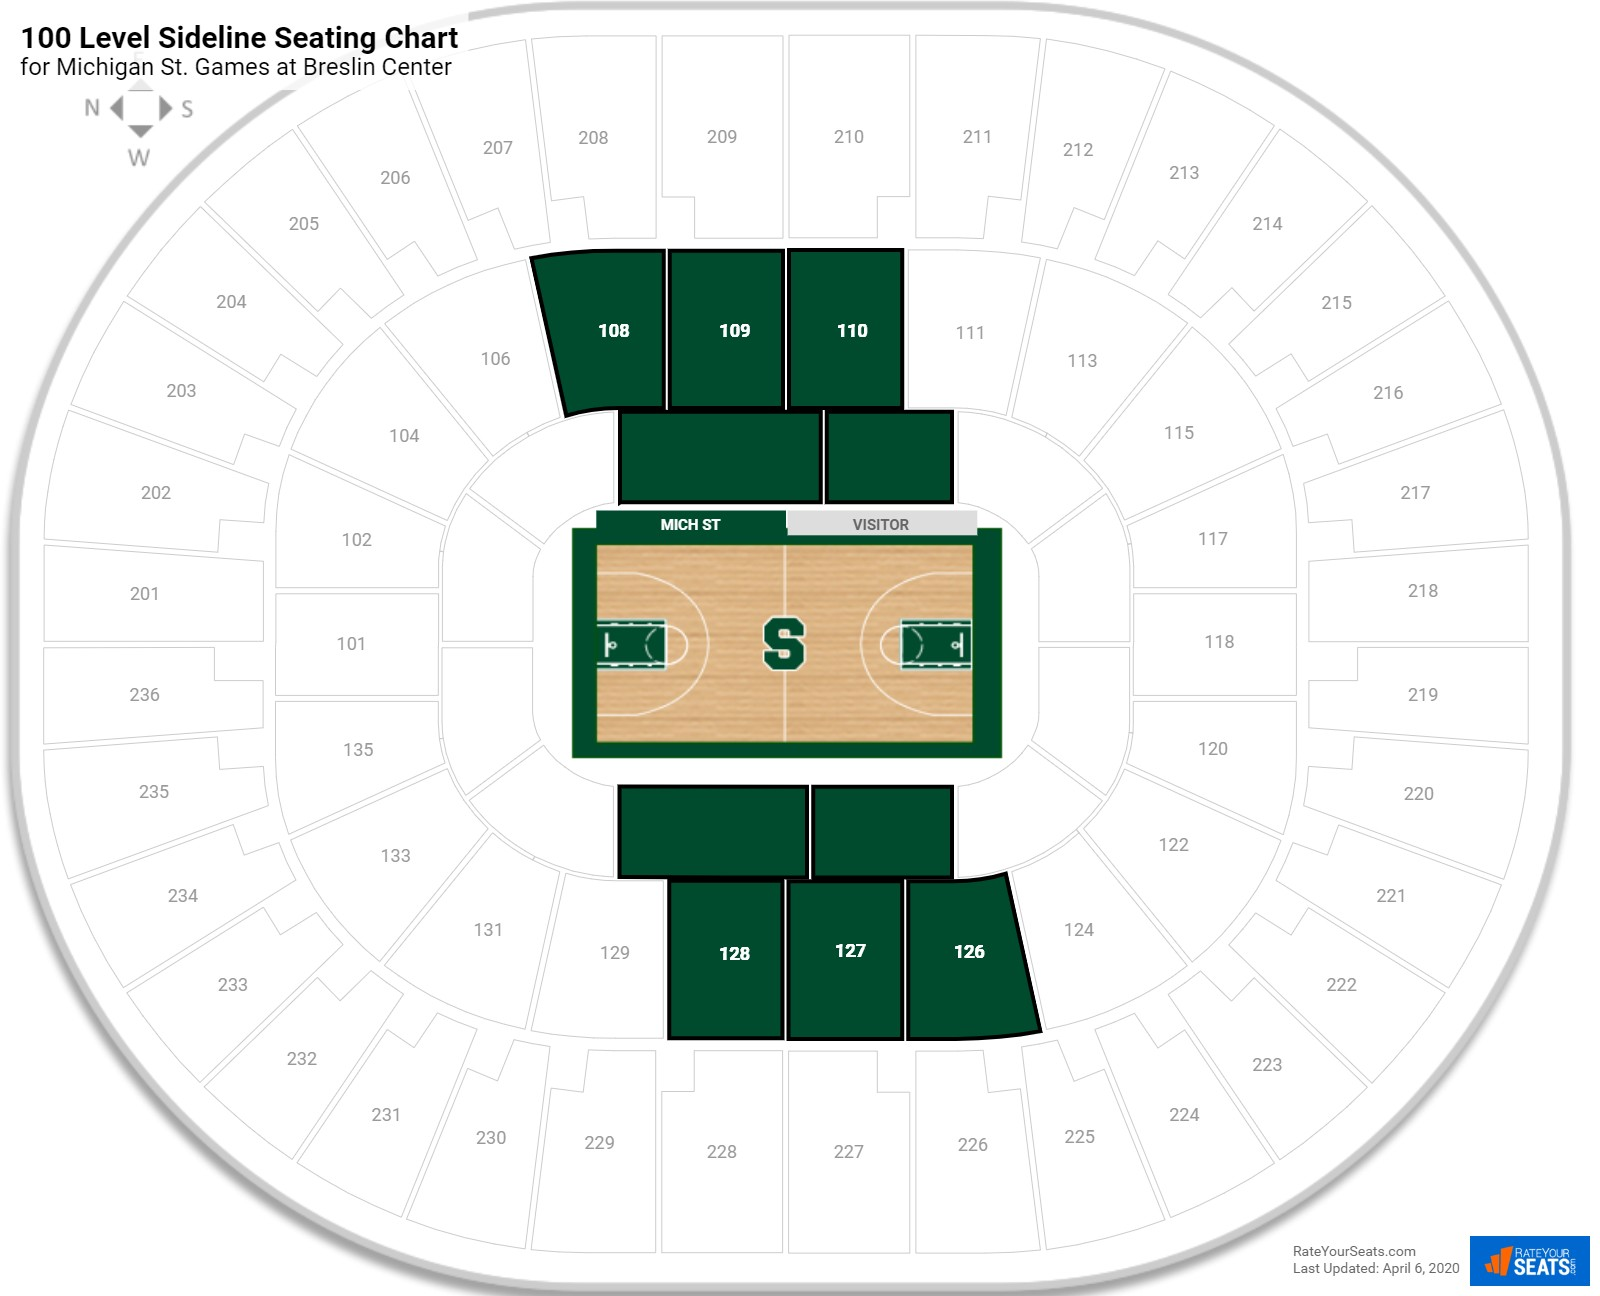 Breslin Center 100 Level Sideline Seating Chart